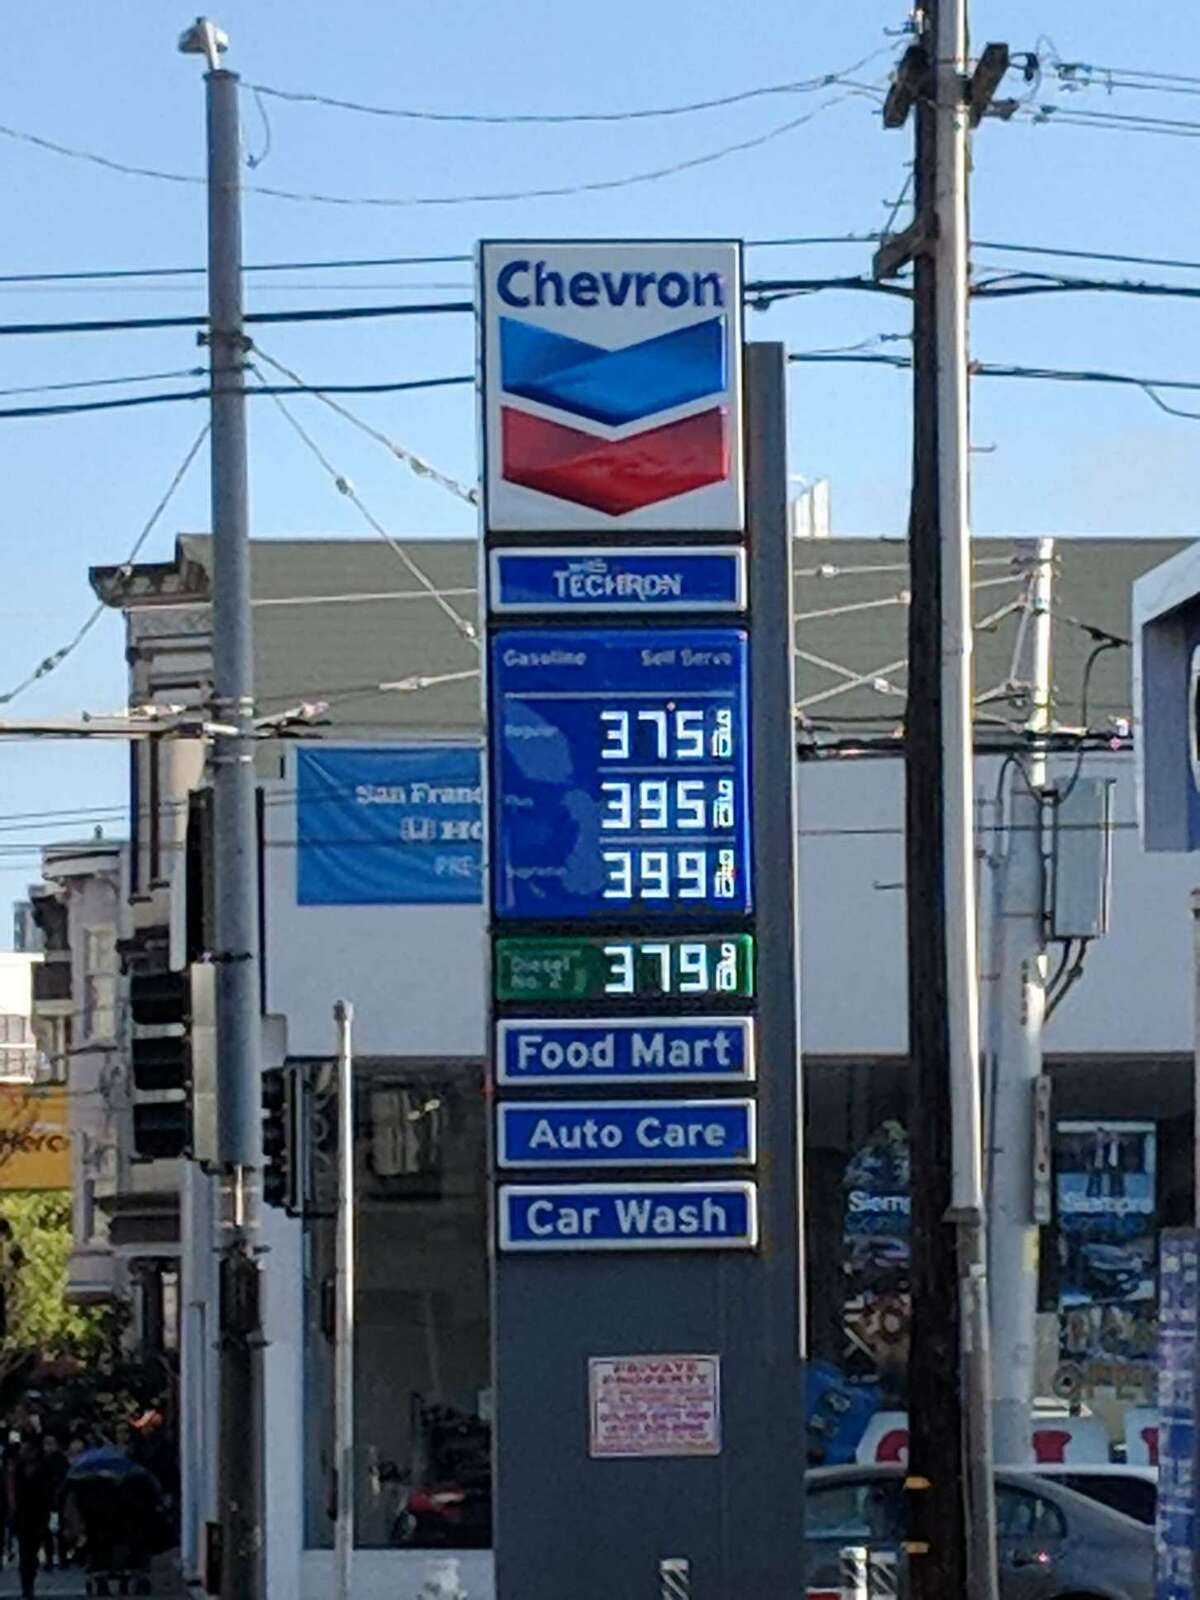 Gas prices at Chevron on South Van Ness in San Francisco on May 2, 2018.